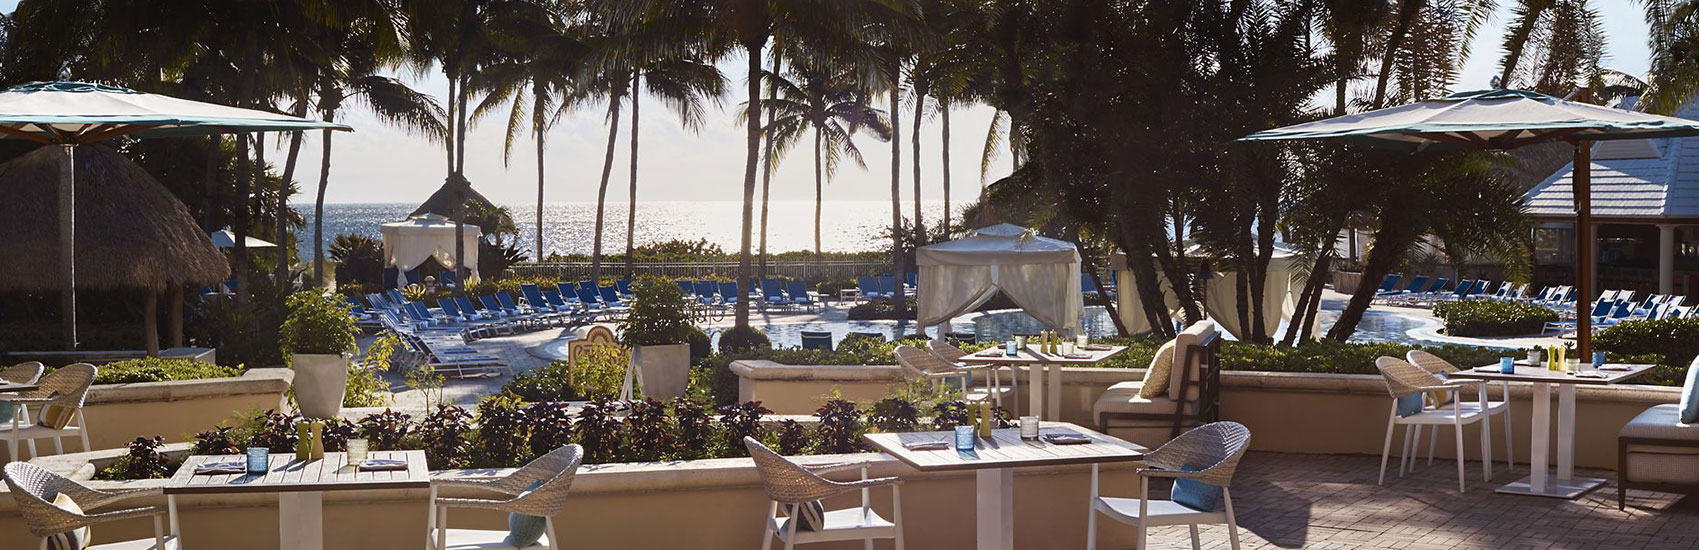 The Ritz Carlton, Key Biscayne